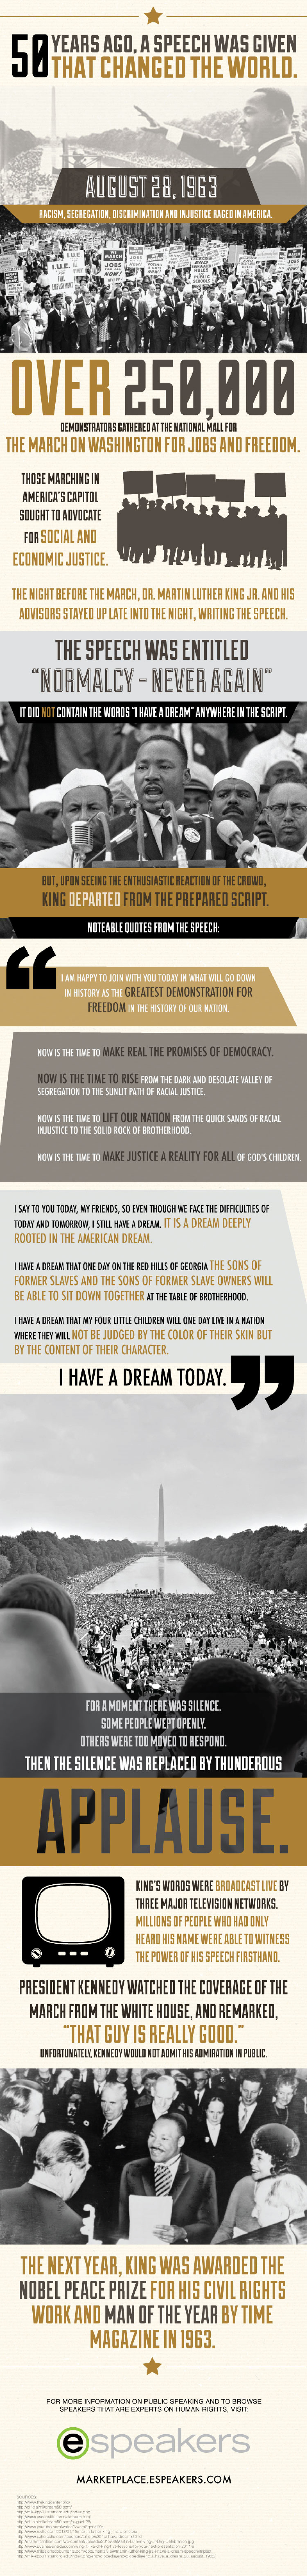 I Have A Dream Infographic